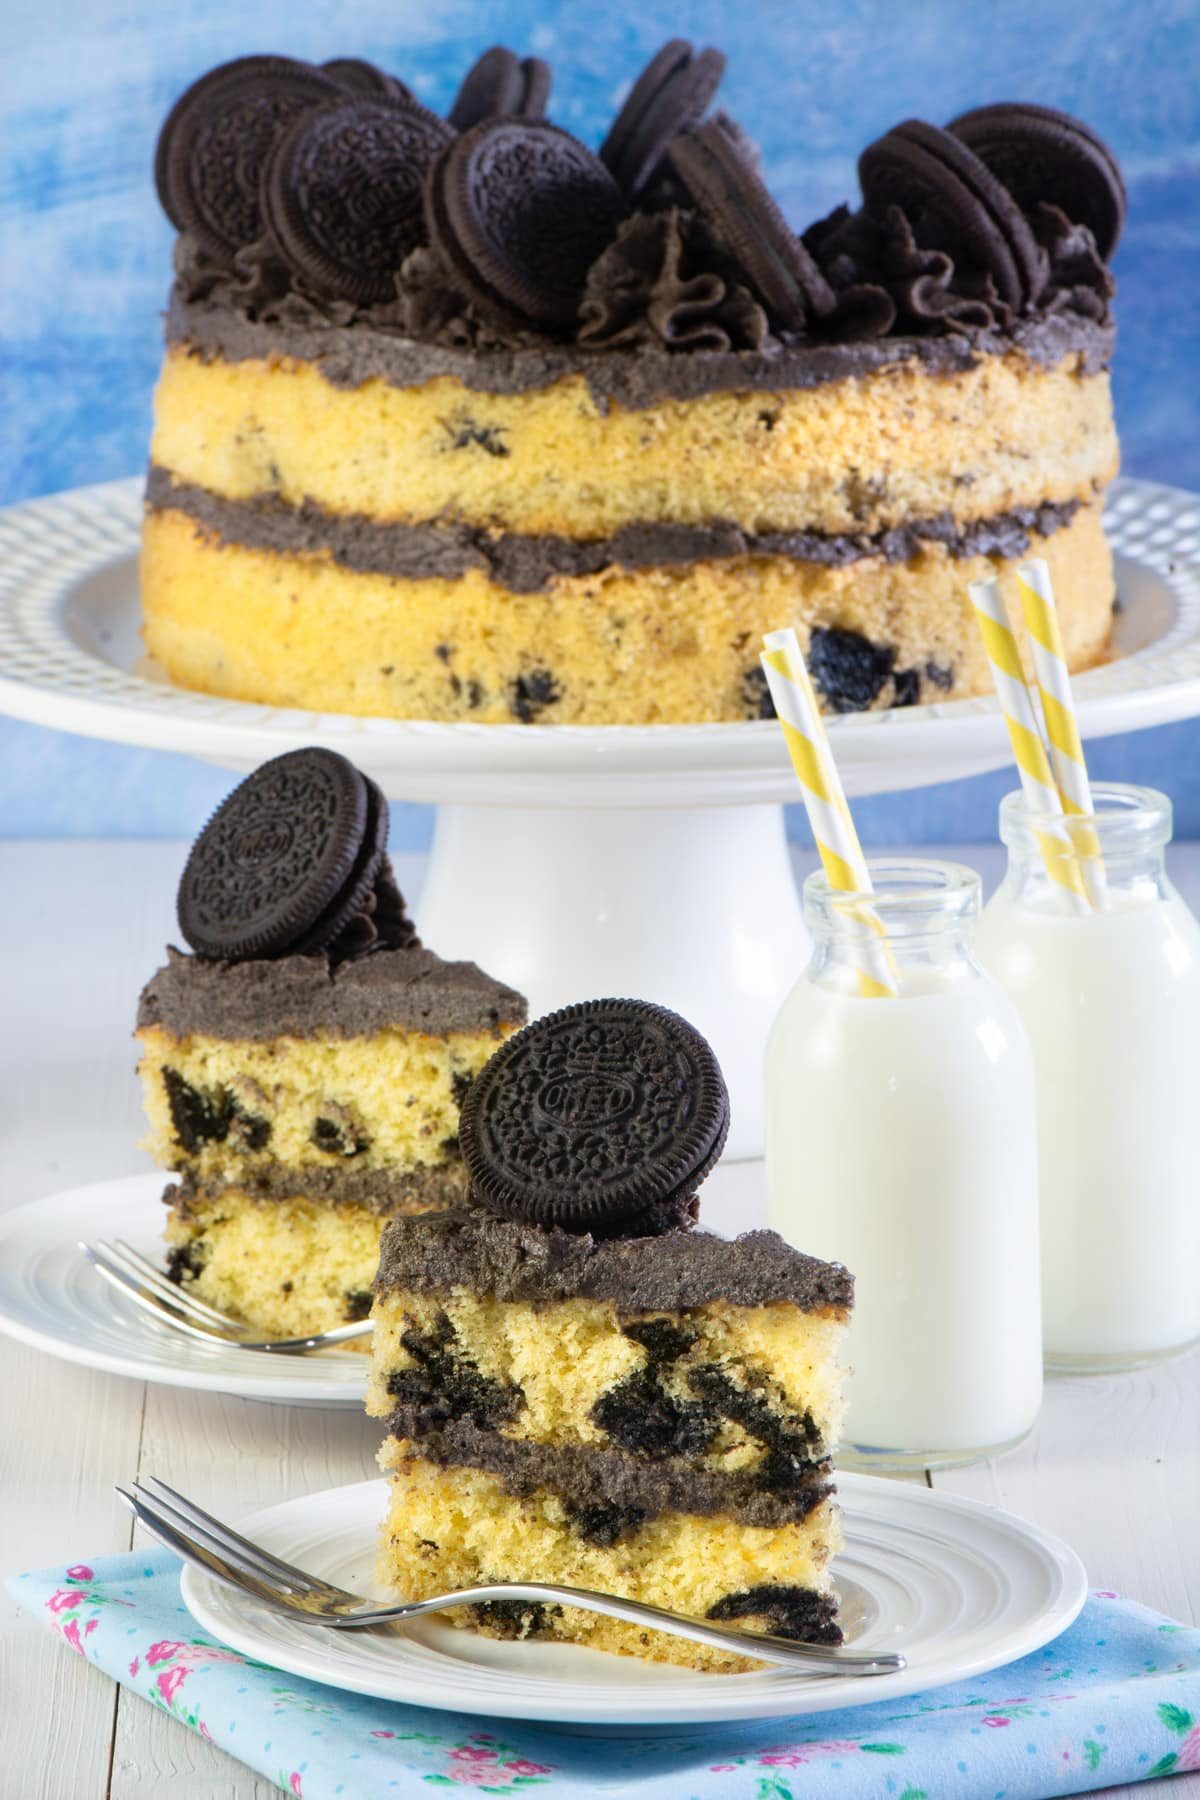 Oreo cake on a stand with 2 slices on plates.